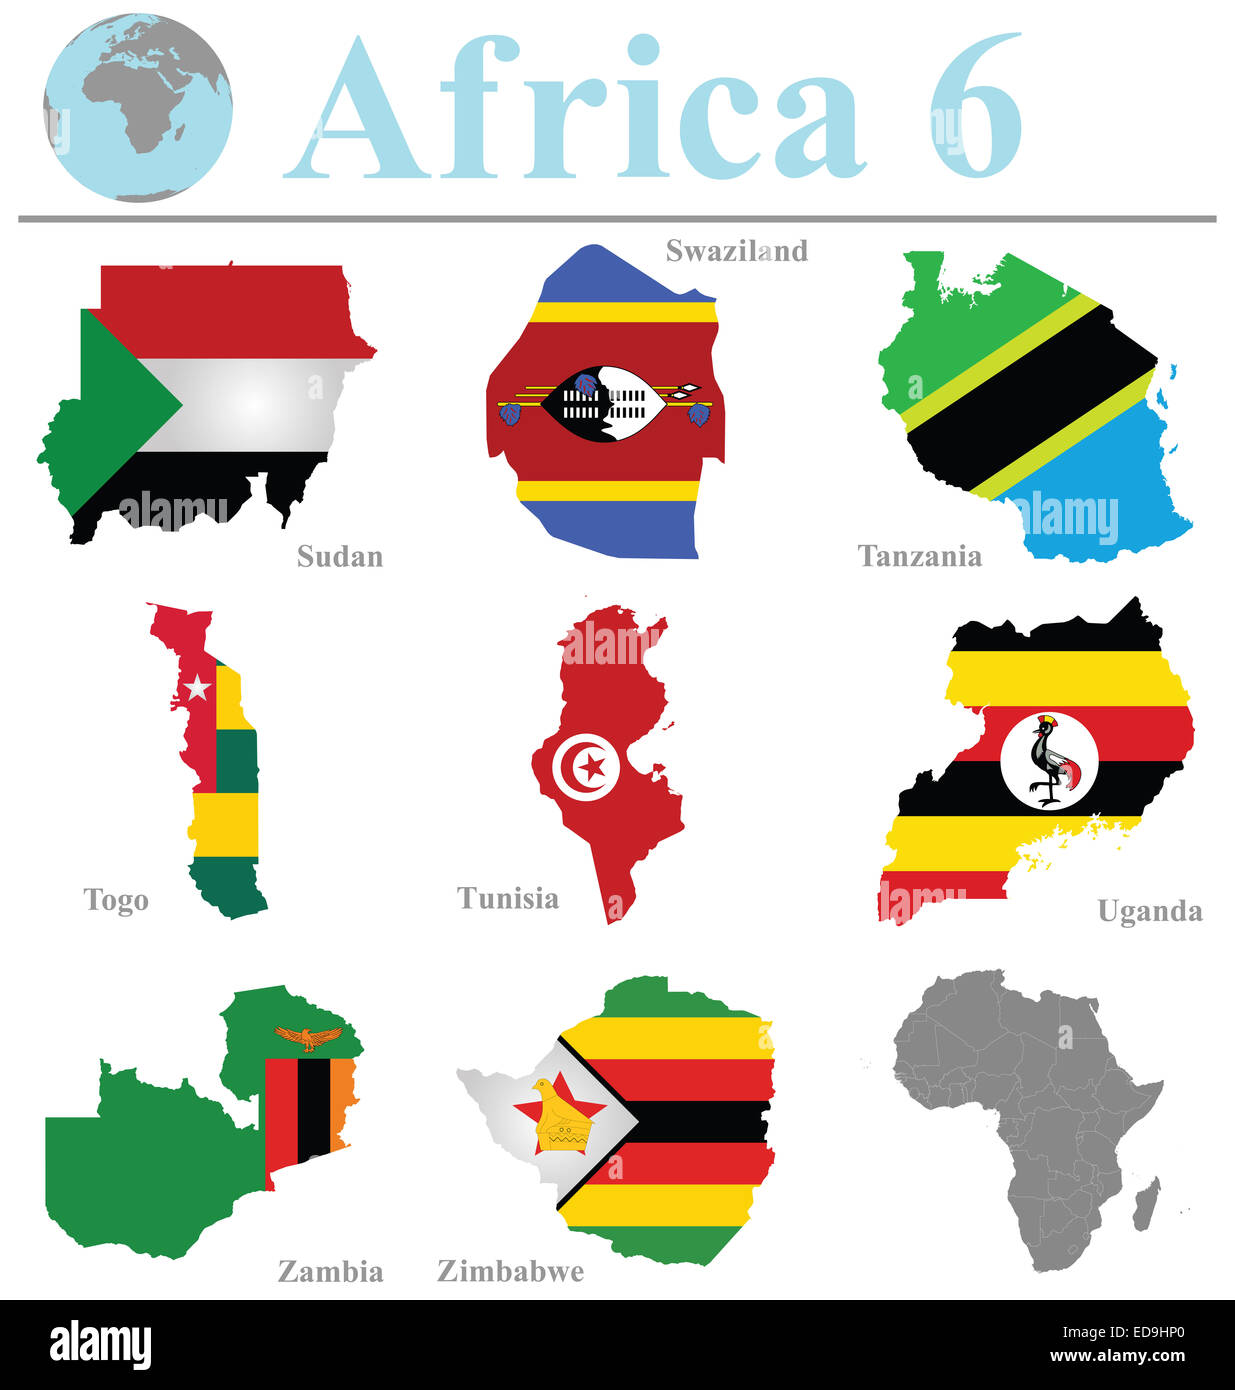 Flags of Africa collection 6 overlaid on outline map isolated on white background - Stock Image